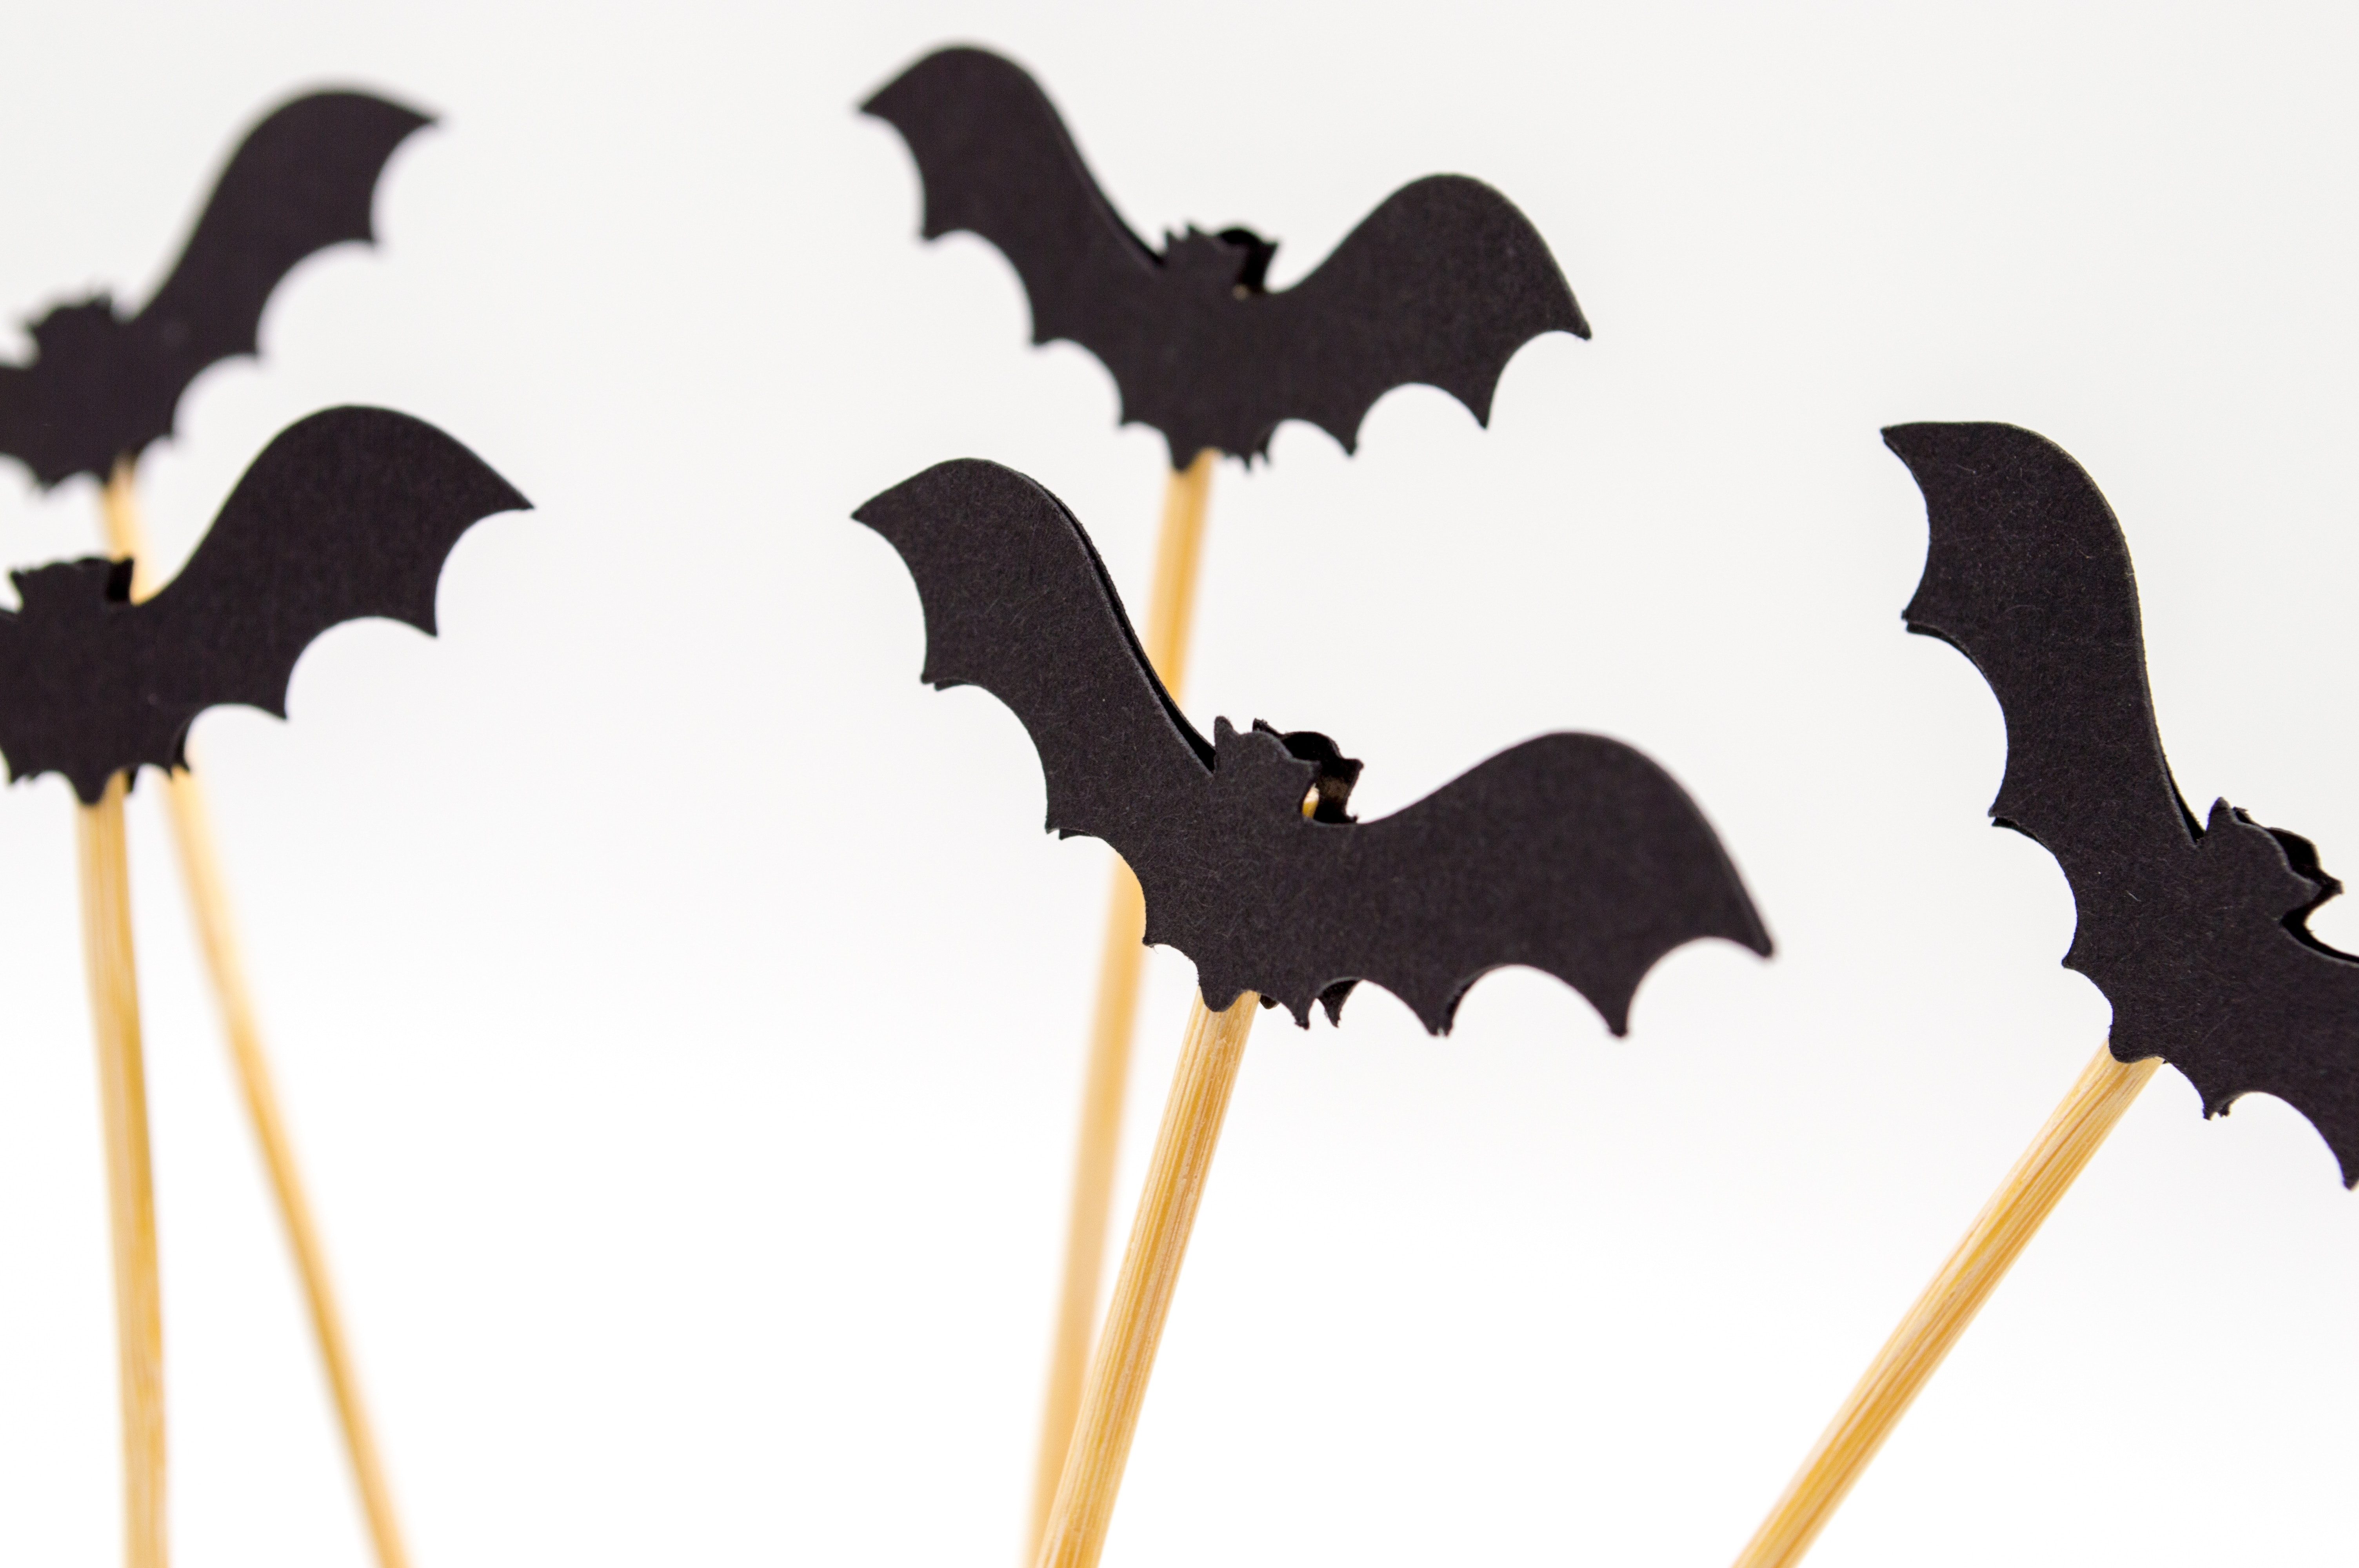 Bats on Sticks for Halloween party Favors - Photo by Mel Poole on Unsplash